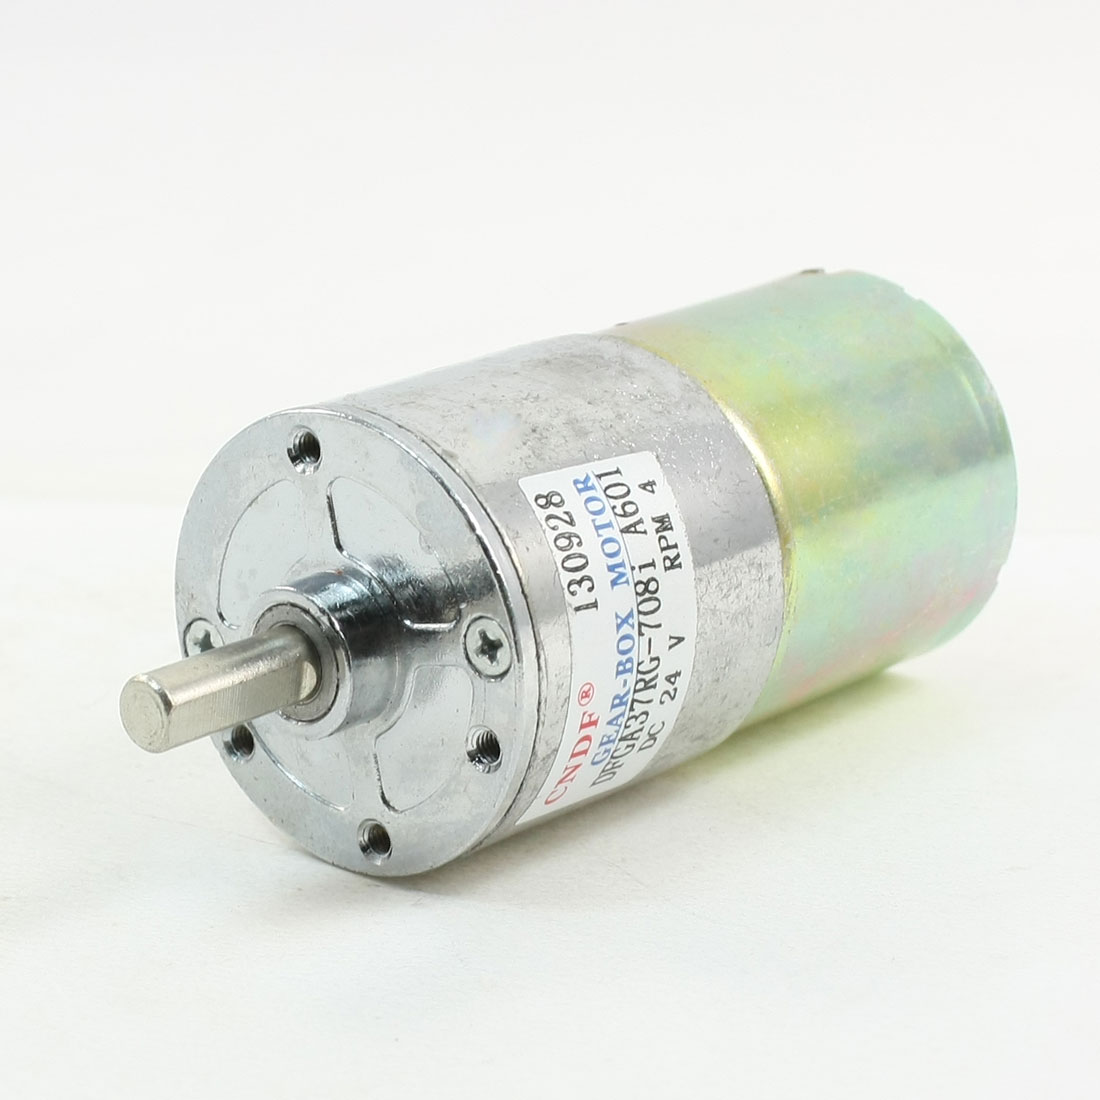 6mm Dia Shaft 4RPM Output Speed 24V DC Gear Box Motor